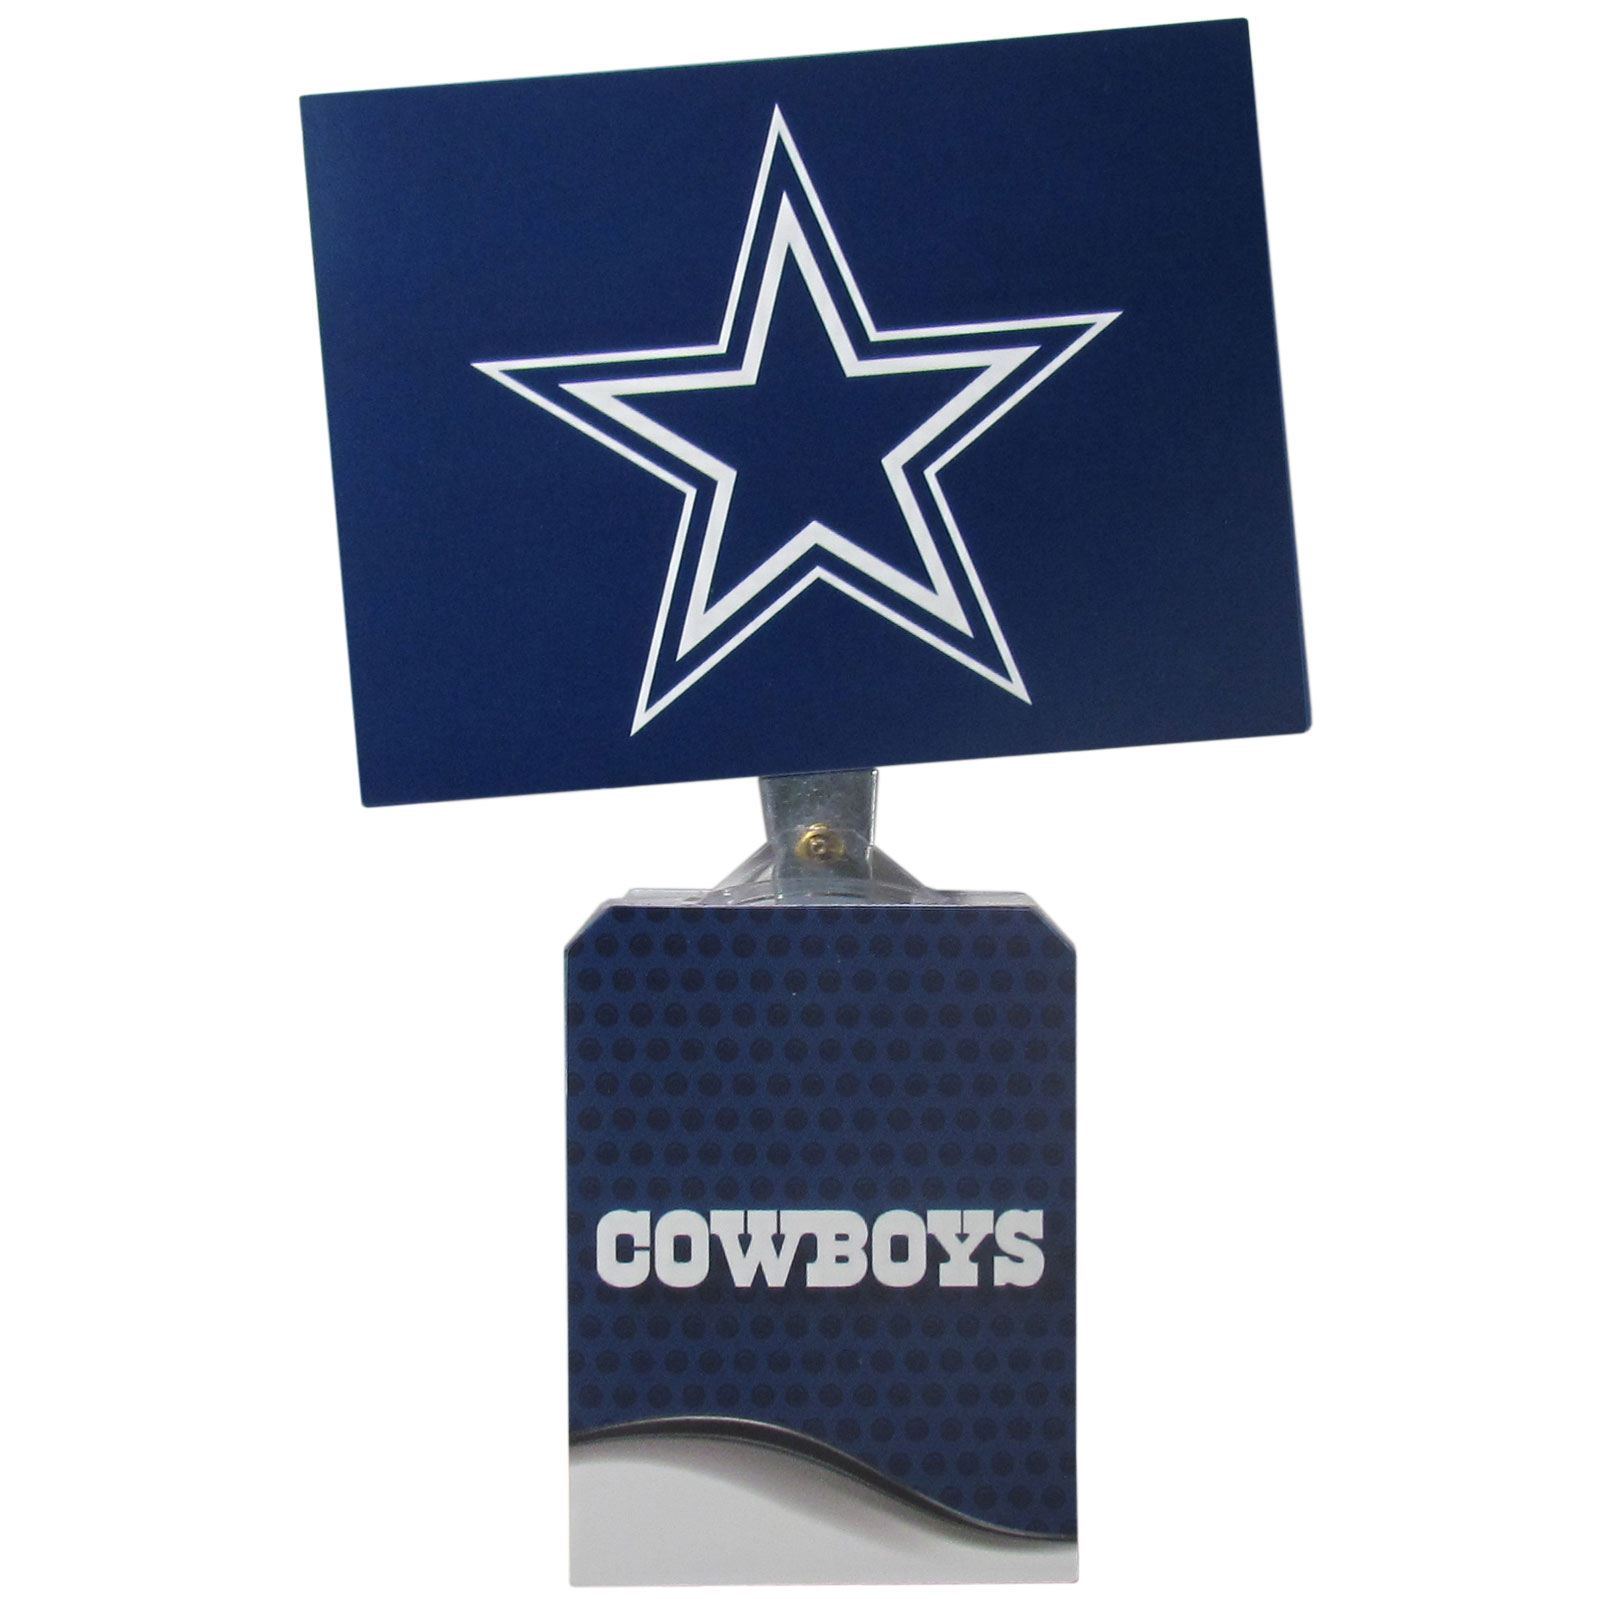 Dallas Cowboys Solar Flags - Get pumped up on the way to game with Siskiyou's Chicago Bears Dallas Cowboys Solar Flag that mounts to your dashboard or window. The in-motion solar flag also doubles as decoration for your tailgate or homegate! The base of the flag is 3 inches tall and the flag is 4 inches making the entire in-motion solar flag stand at 7 inches tall. Keep your spirit moving with your favorite team's Solar Flag.